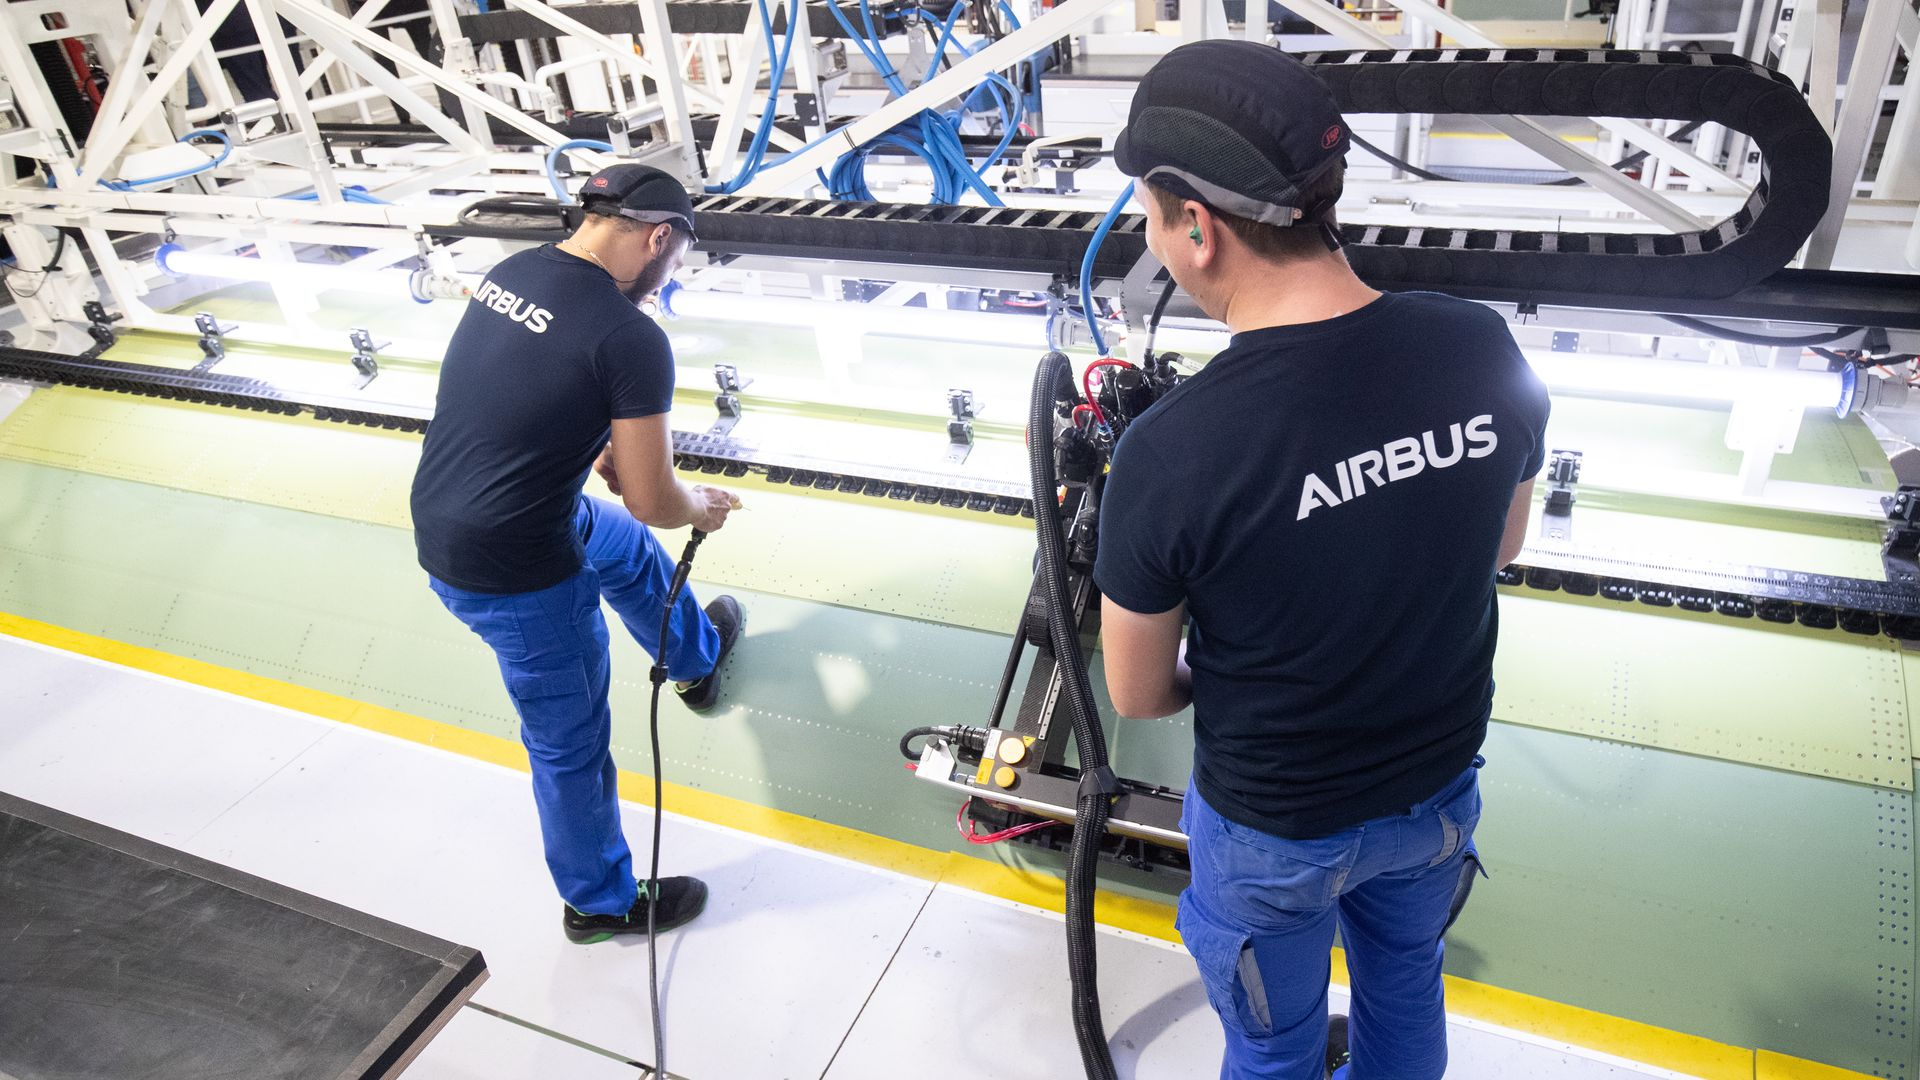 In this image, two men wearing shirts with the Airbus logo work on assembling an Airbus plane